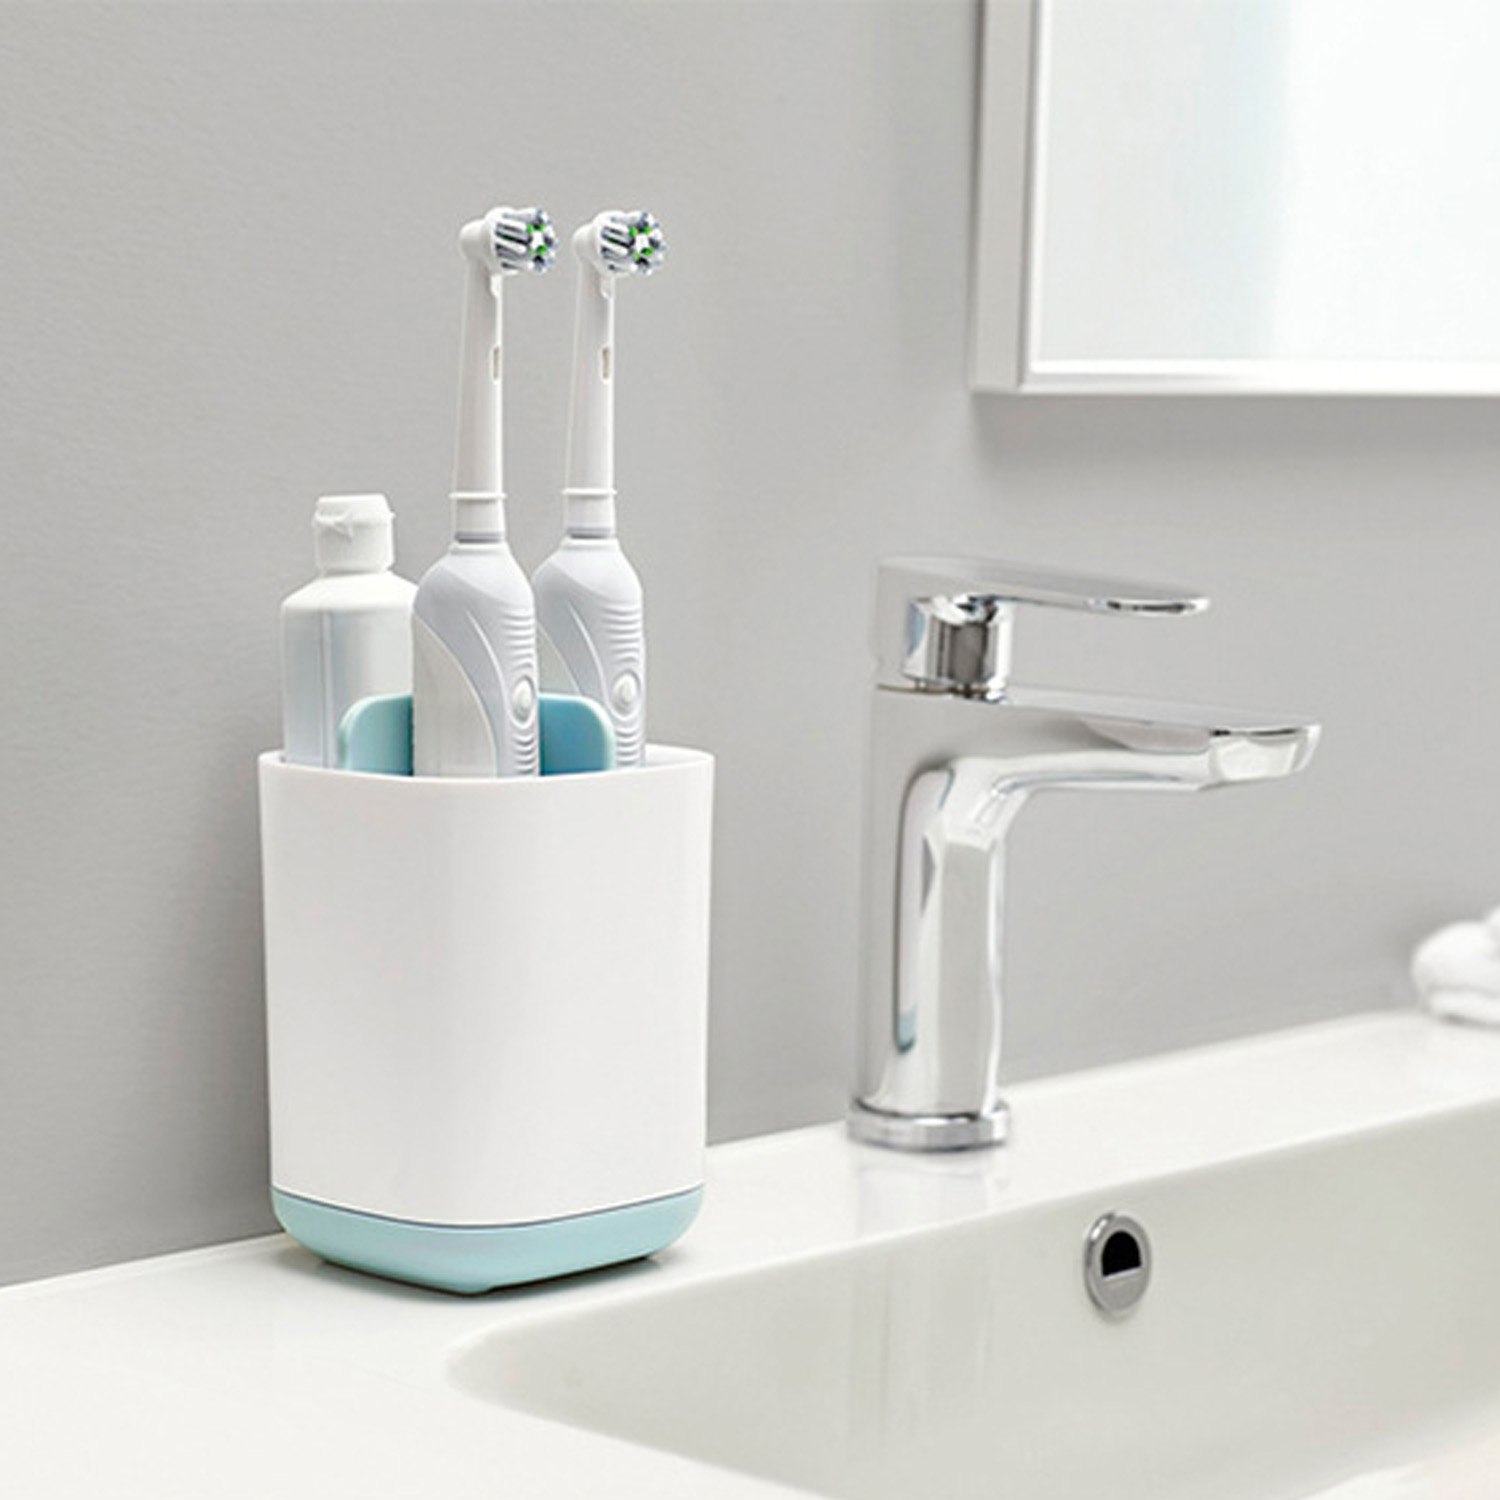 3-Slot Toothbrush Toothpaste Holder Stand Box Caddy Bathroom Accessories Organizer Electric Toothbrush Razor Stand Box Organizer